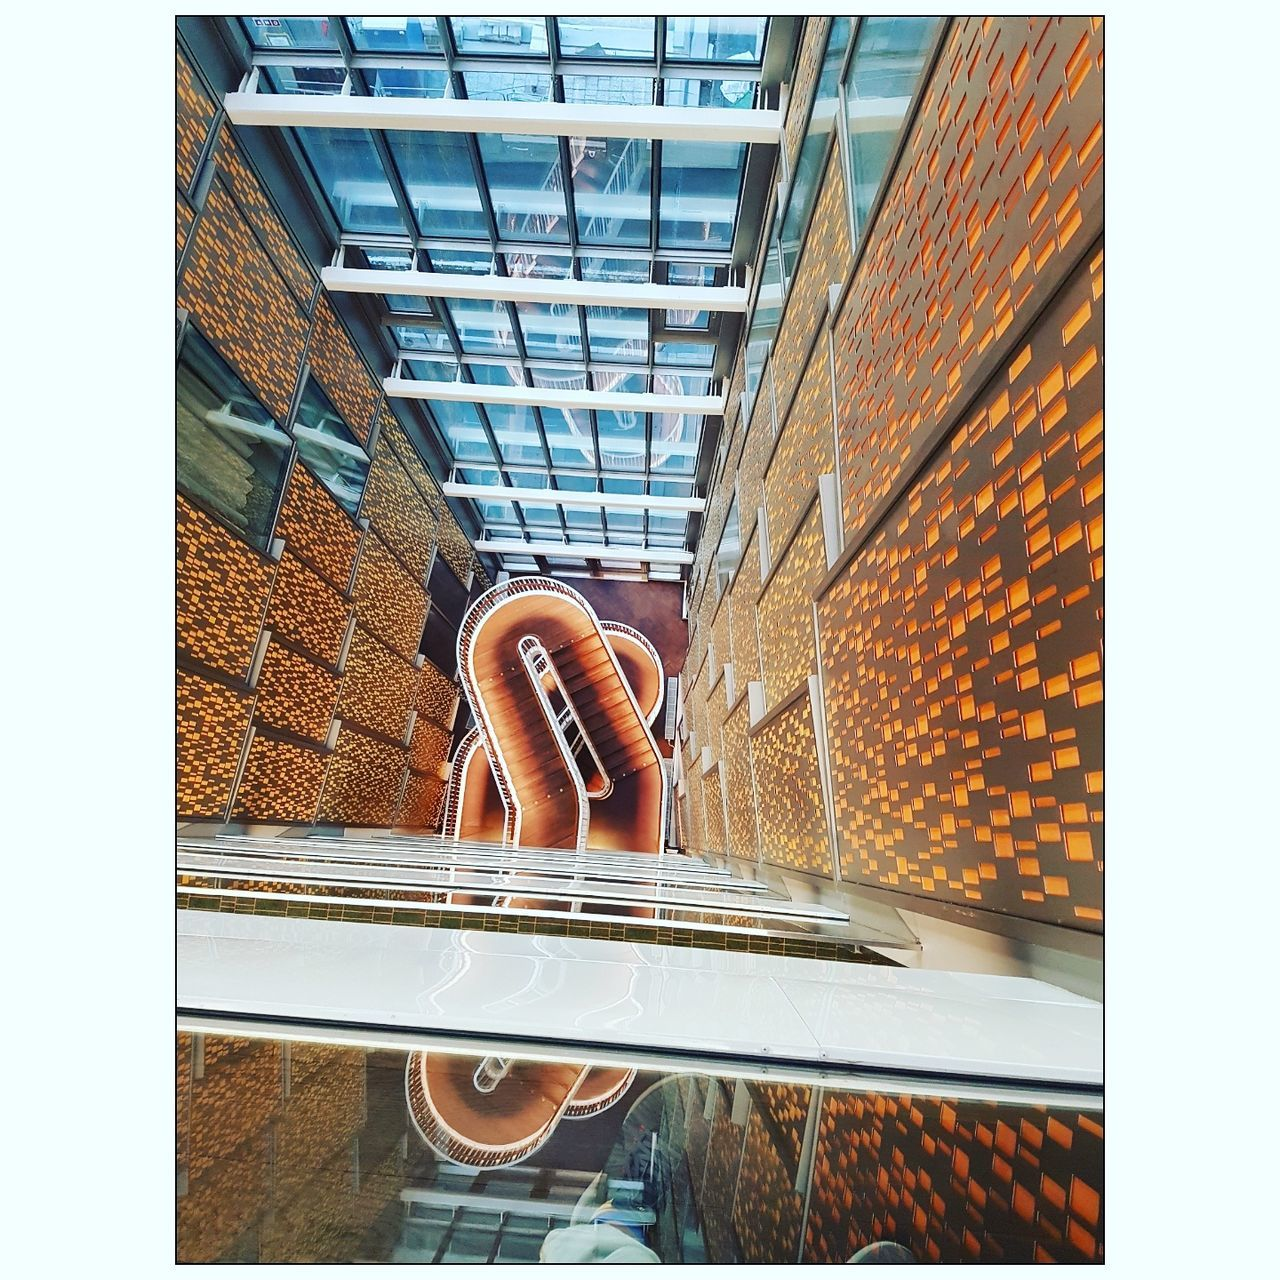 Window Architecture Indoors  Day No People Built Structure Building Exterior City Spiral Staircase